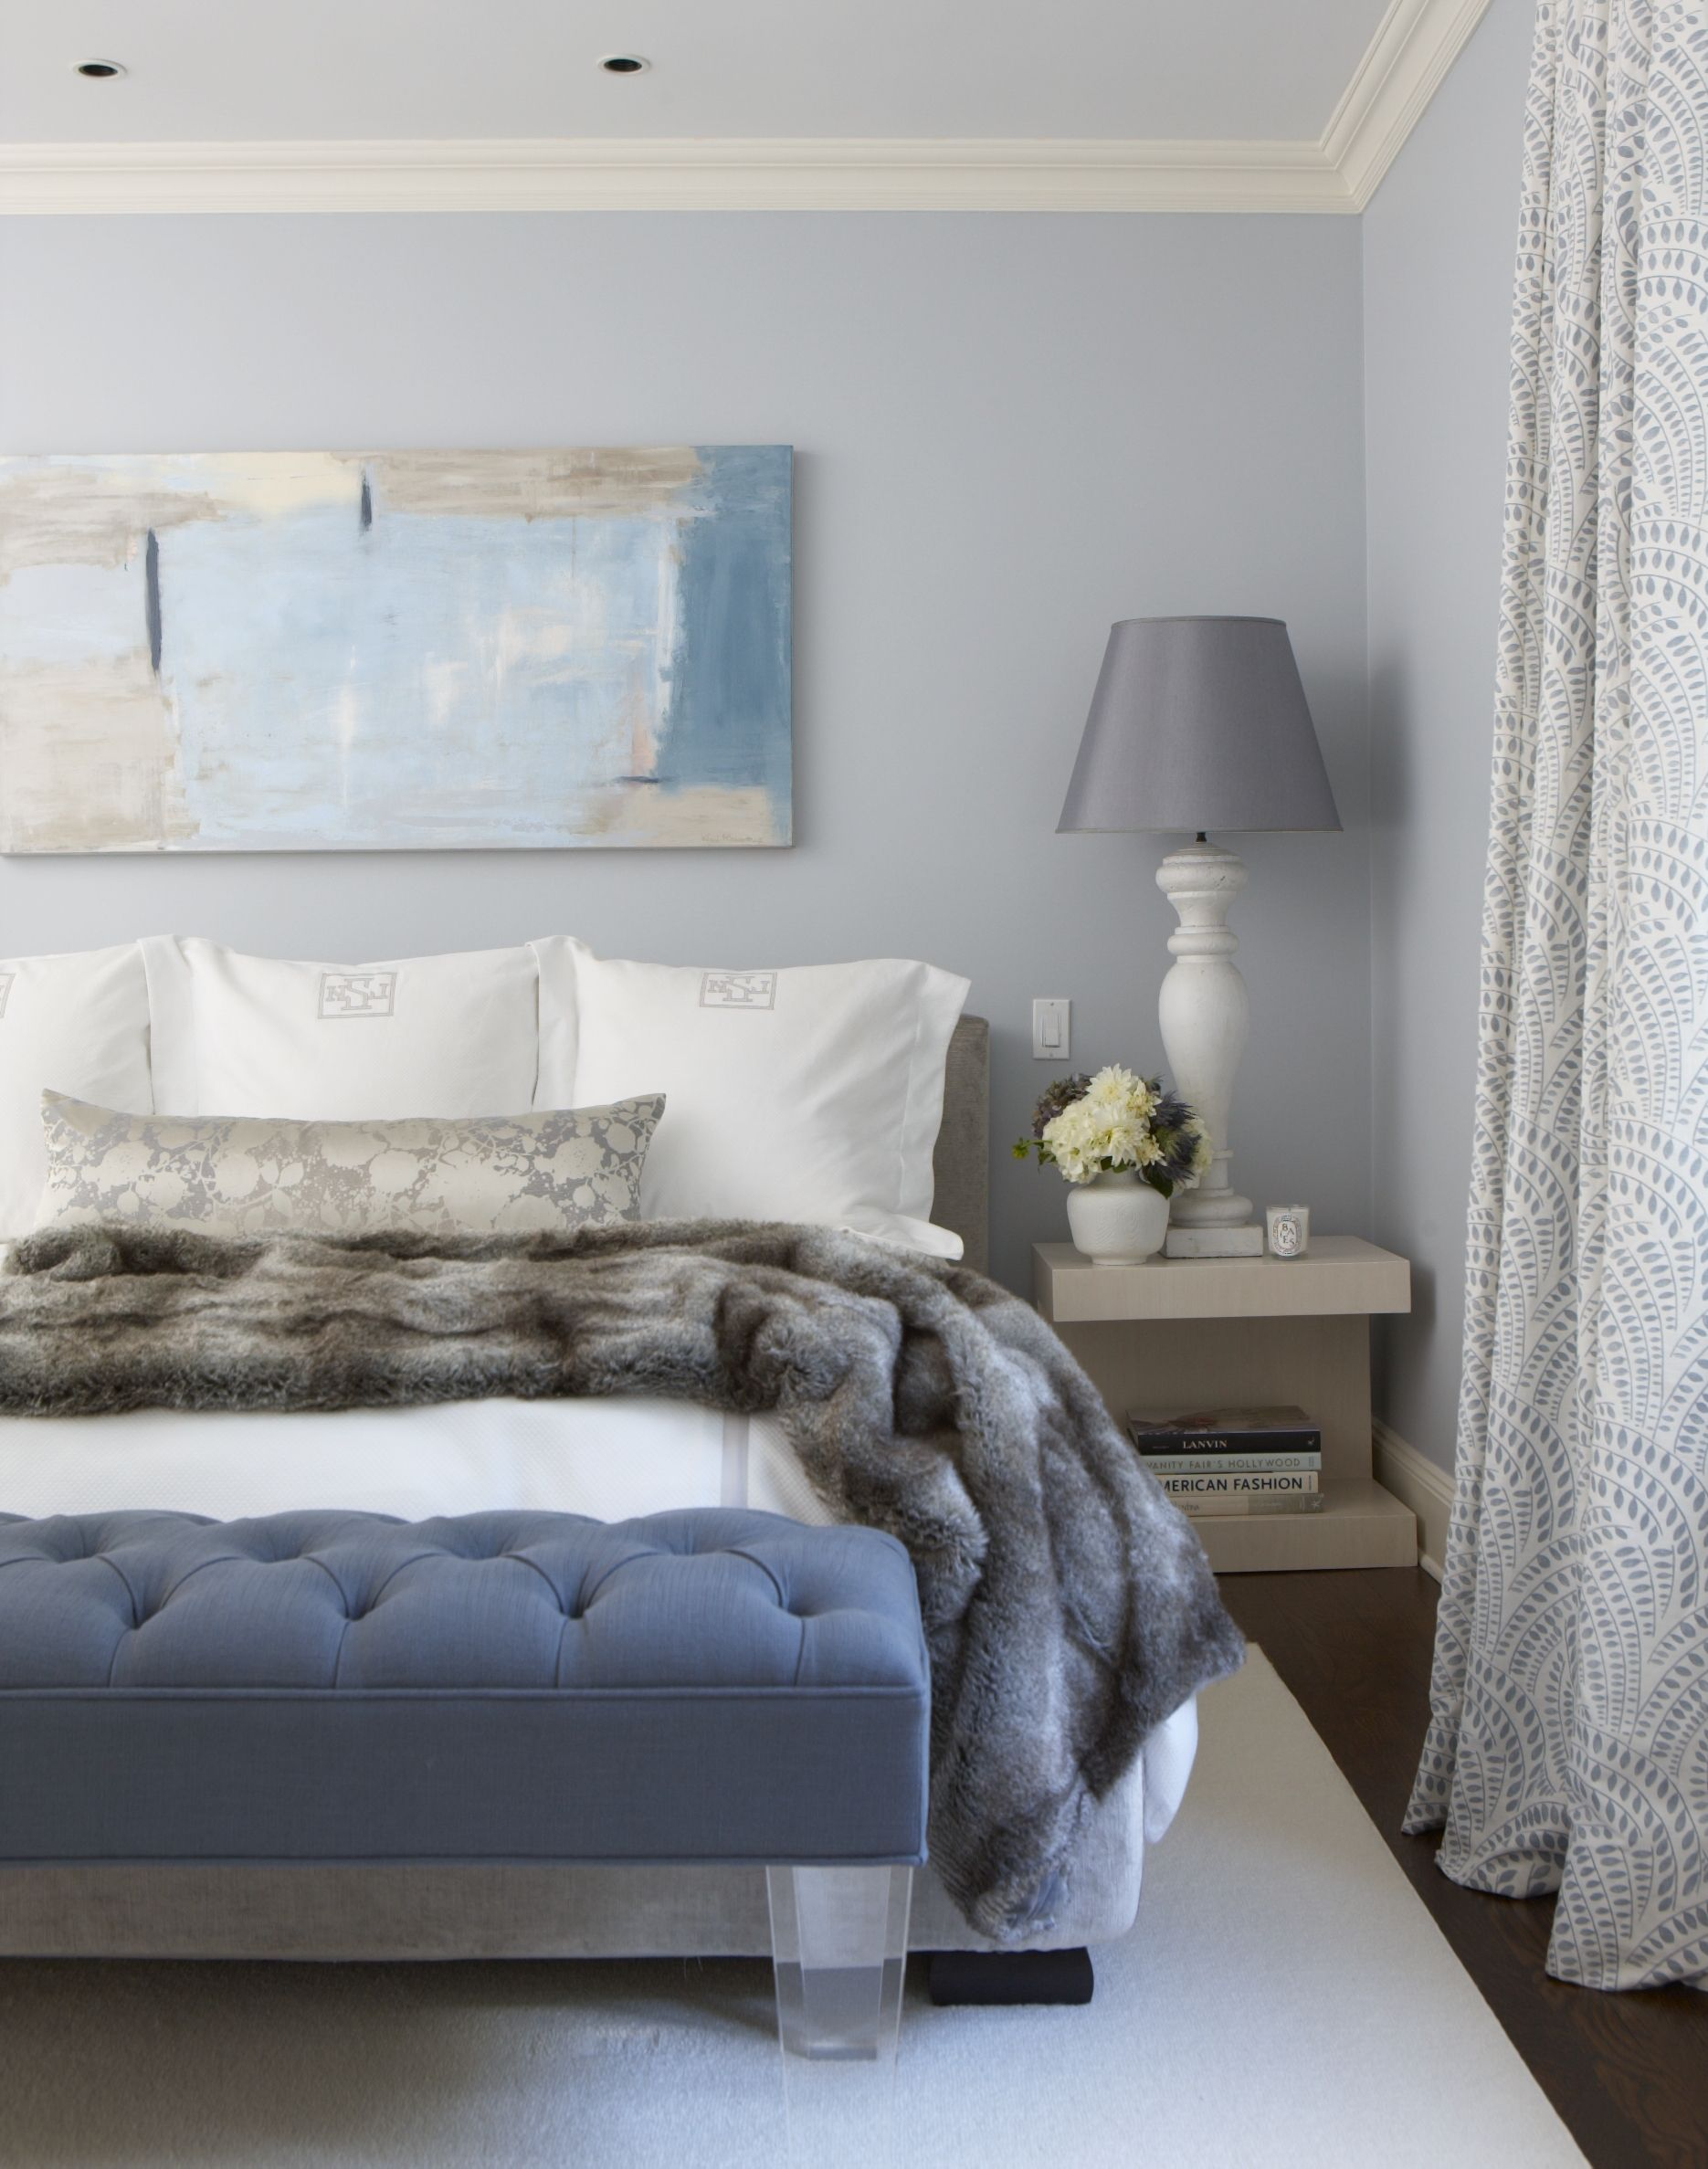 9 Best Faux Fur Decorating Tips - Cozy Room Ideas